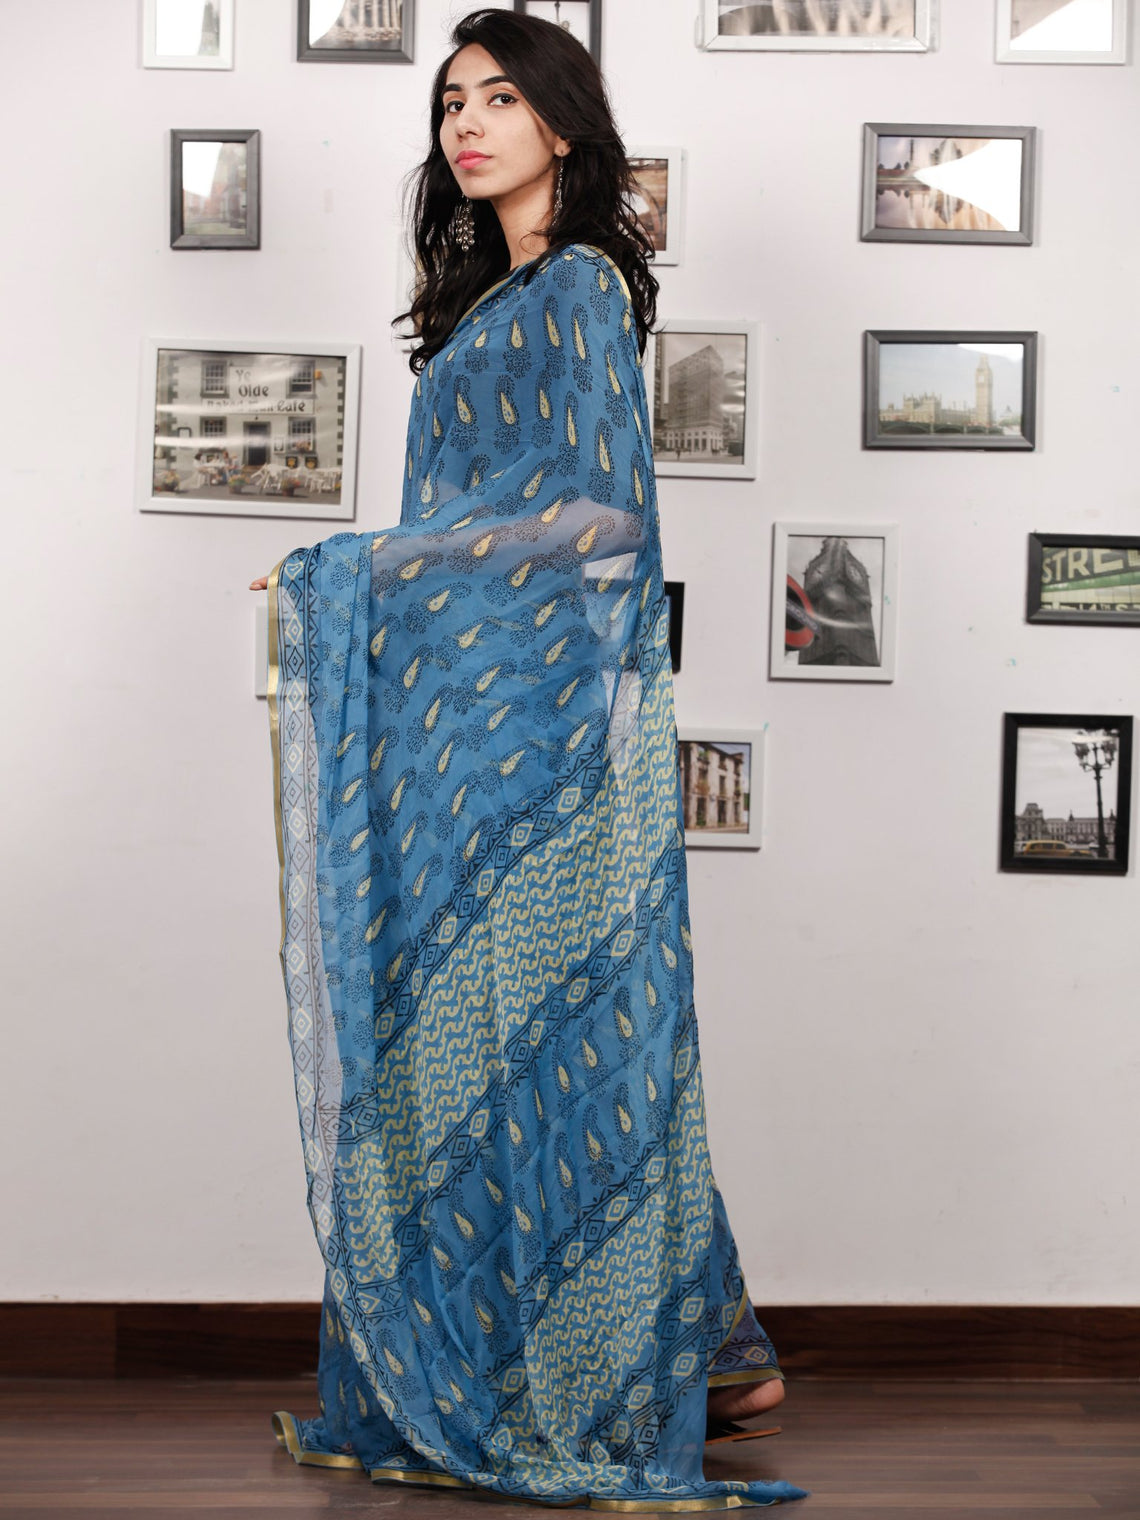 Blue Lime Black Hand Block Printed Chiffon Saree with Zari Border - S031703505